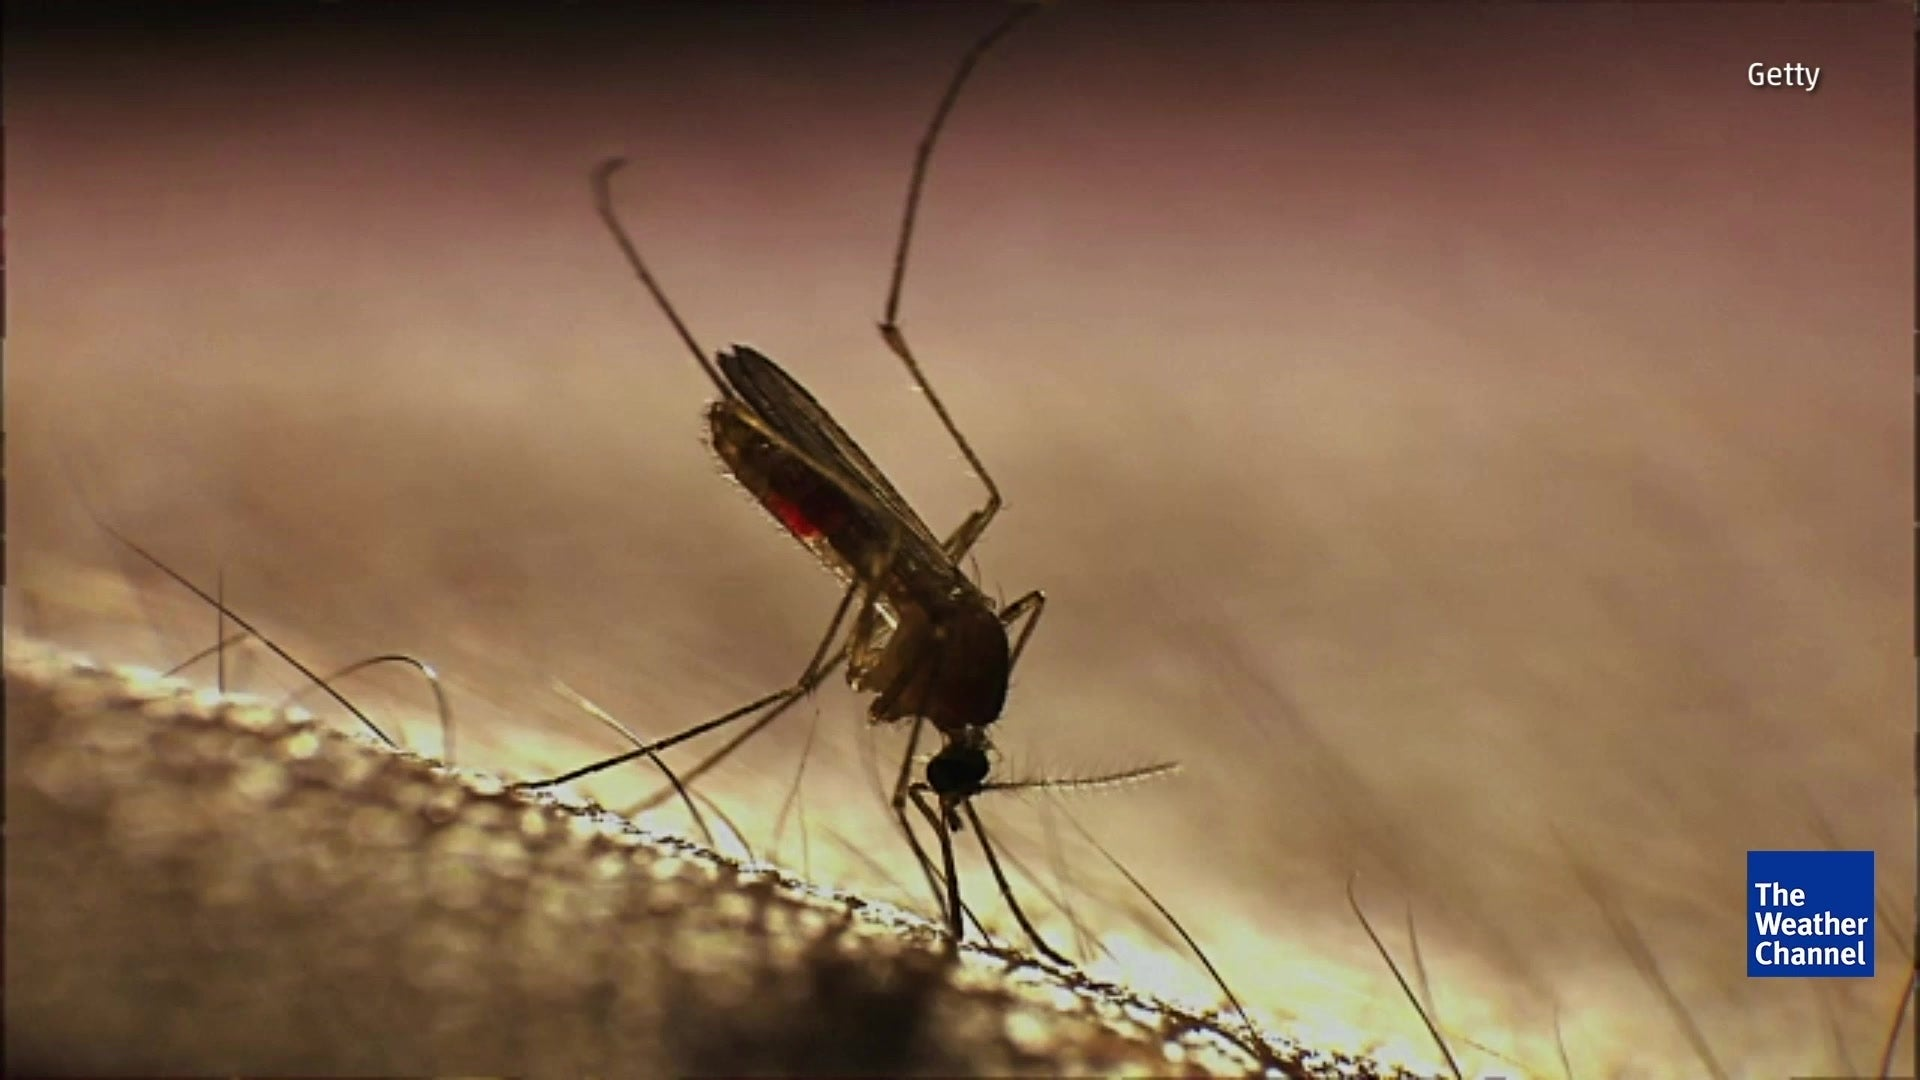 Study: Mosquitoes Stay Away from Those Who Swat at Them